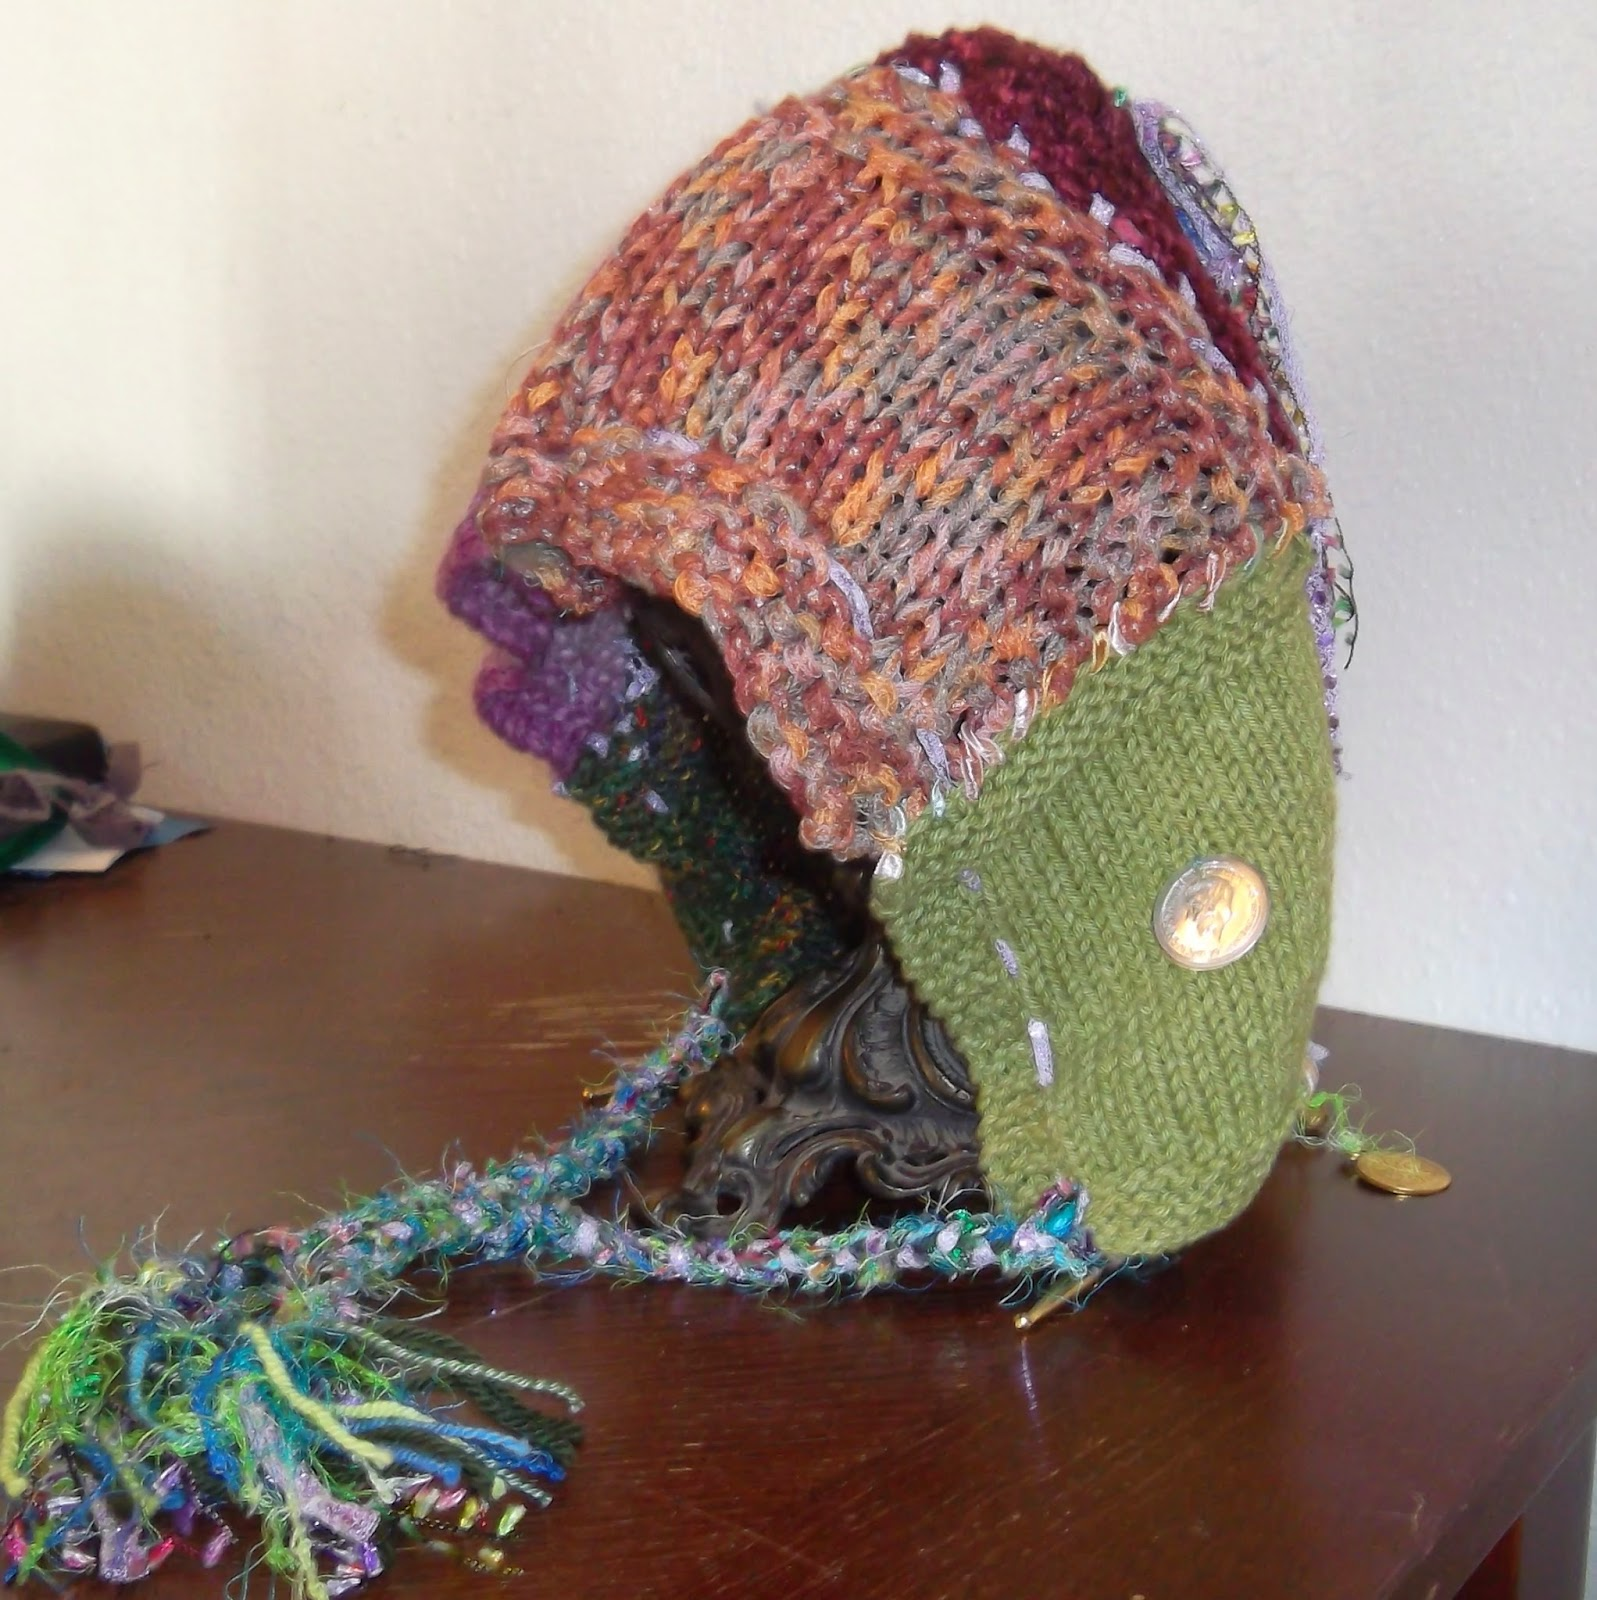 Knit swatches in varying colors, assembled into a hood that is draped over a round candle-holder on base. The hood's lower corners have braided ties that are made out of a variety of yarns. Coins and bells are fastened to the ends of streamers that hang from the hood's upper point.